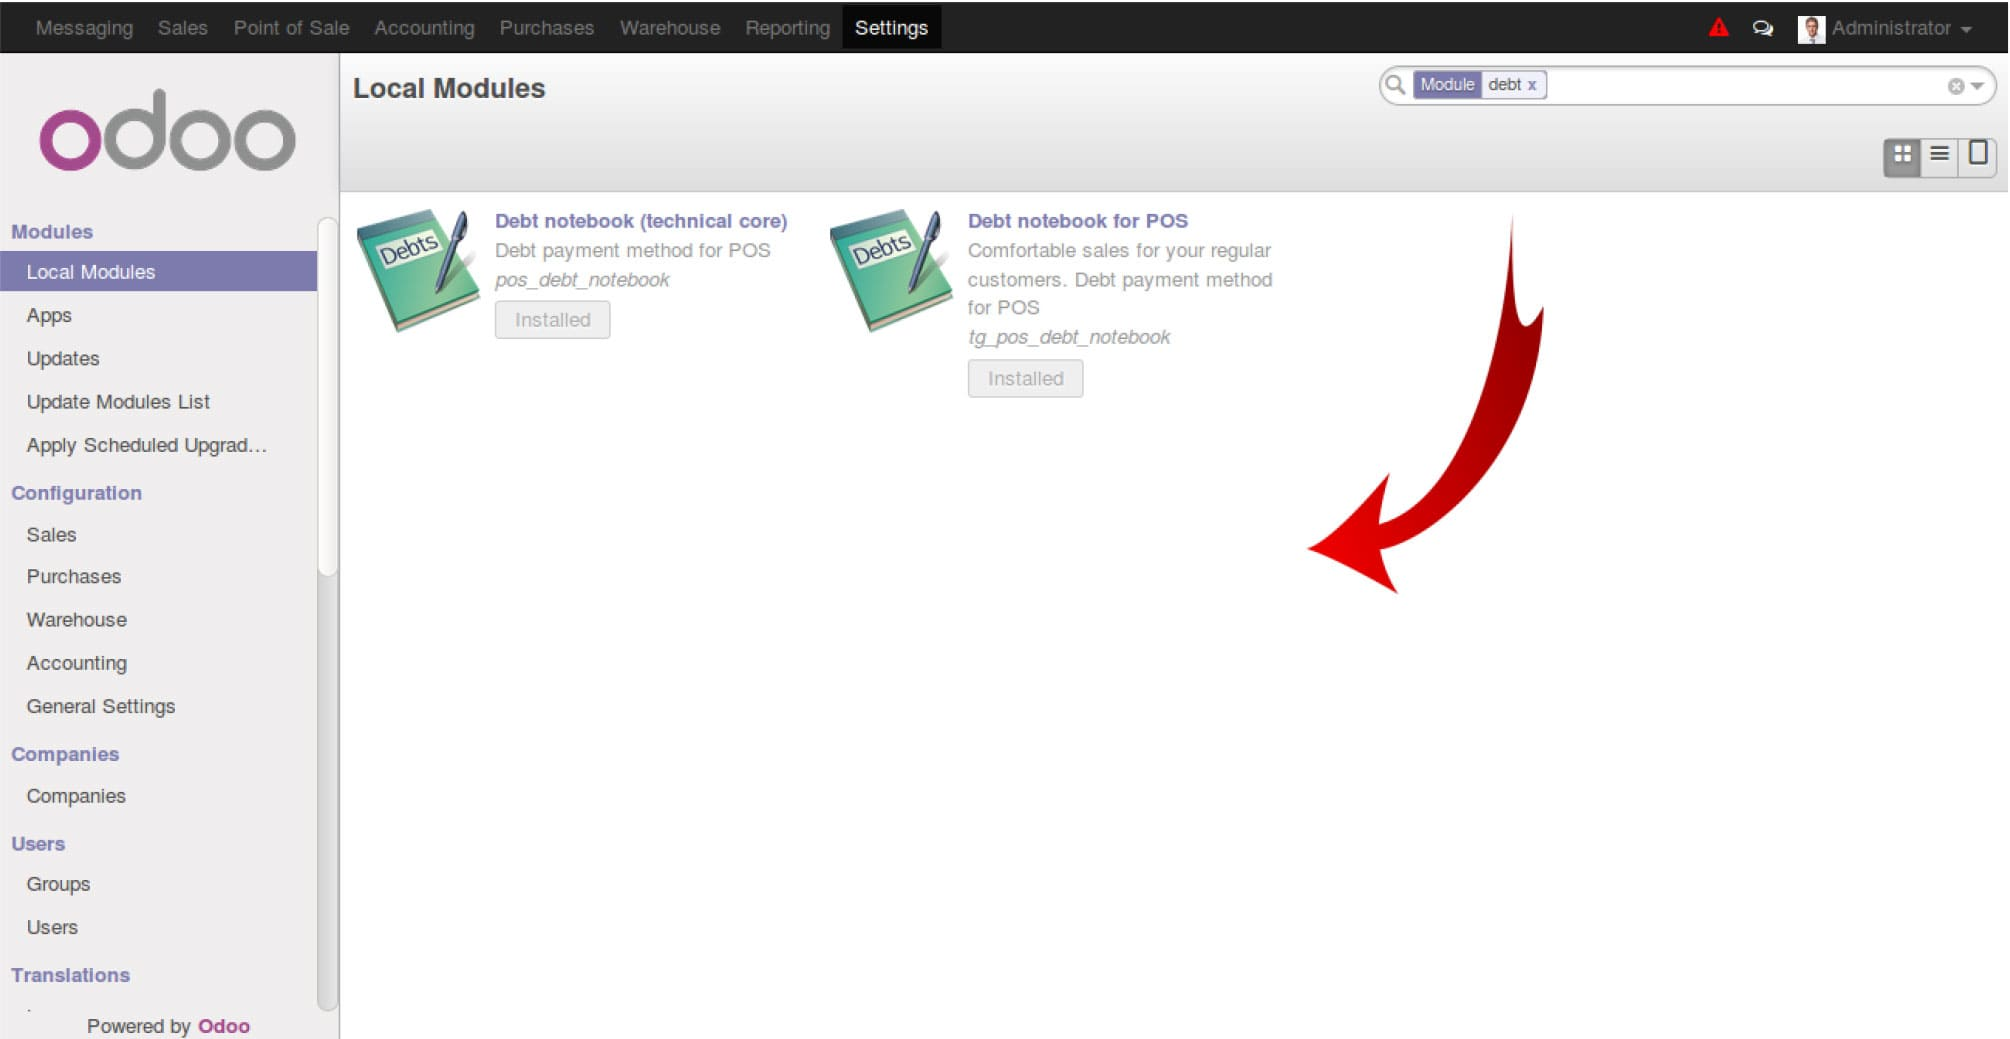 https/blog/Uploads/BlogImage/debt-notebook-7.jpg